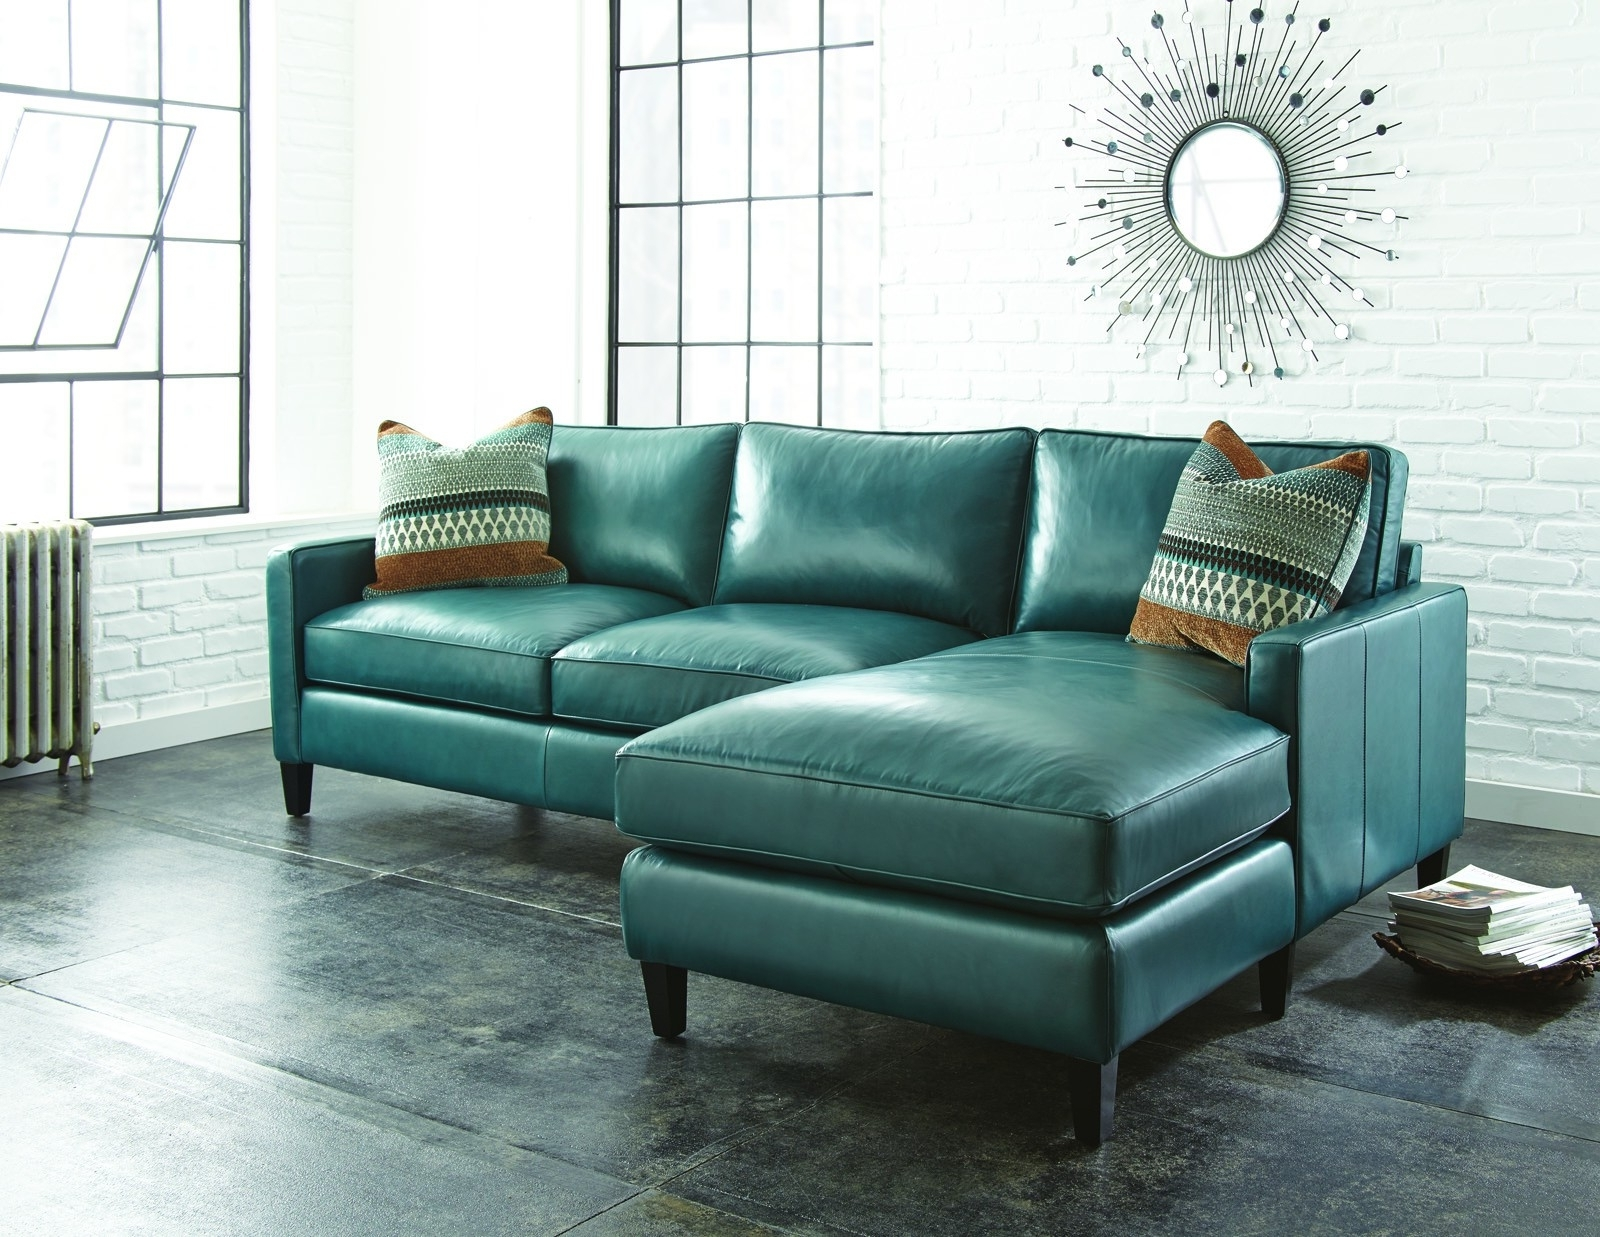 New Ideas Green Leather Sectional Sofa And Would You Put This Teal Inside Newest Green Sectional Sofas With Chaise (View 11 of 15)